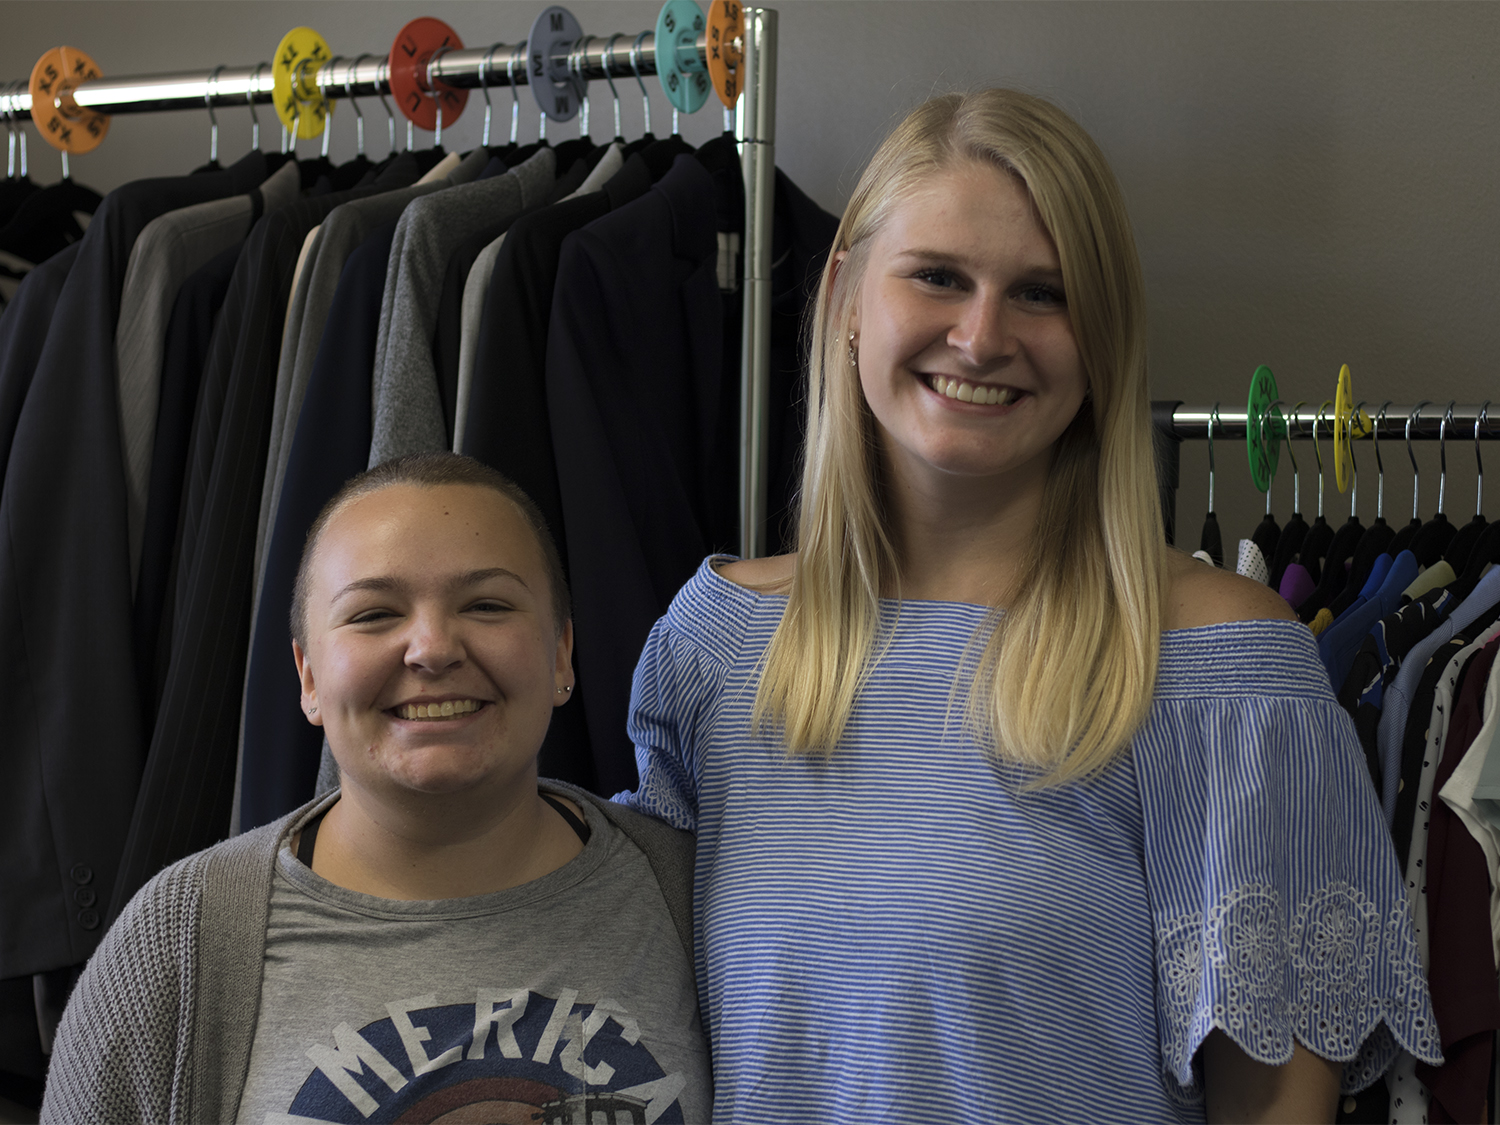 Clothing Closet marketing director Sasha Mote and executive director Lindsey Meyer pose for a portrait on Sept. 13, 2018.